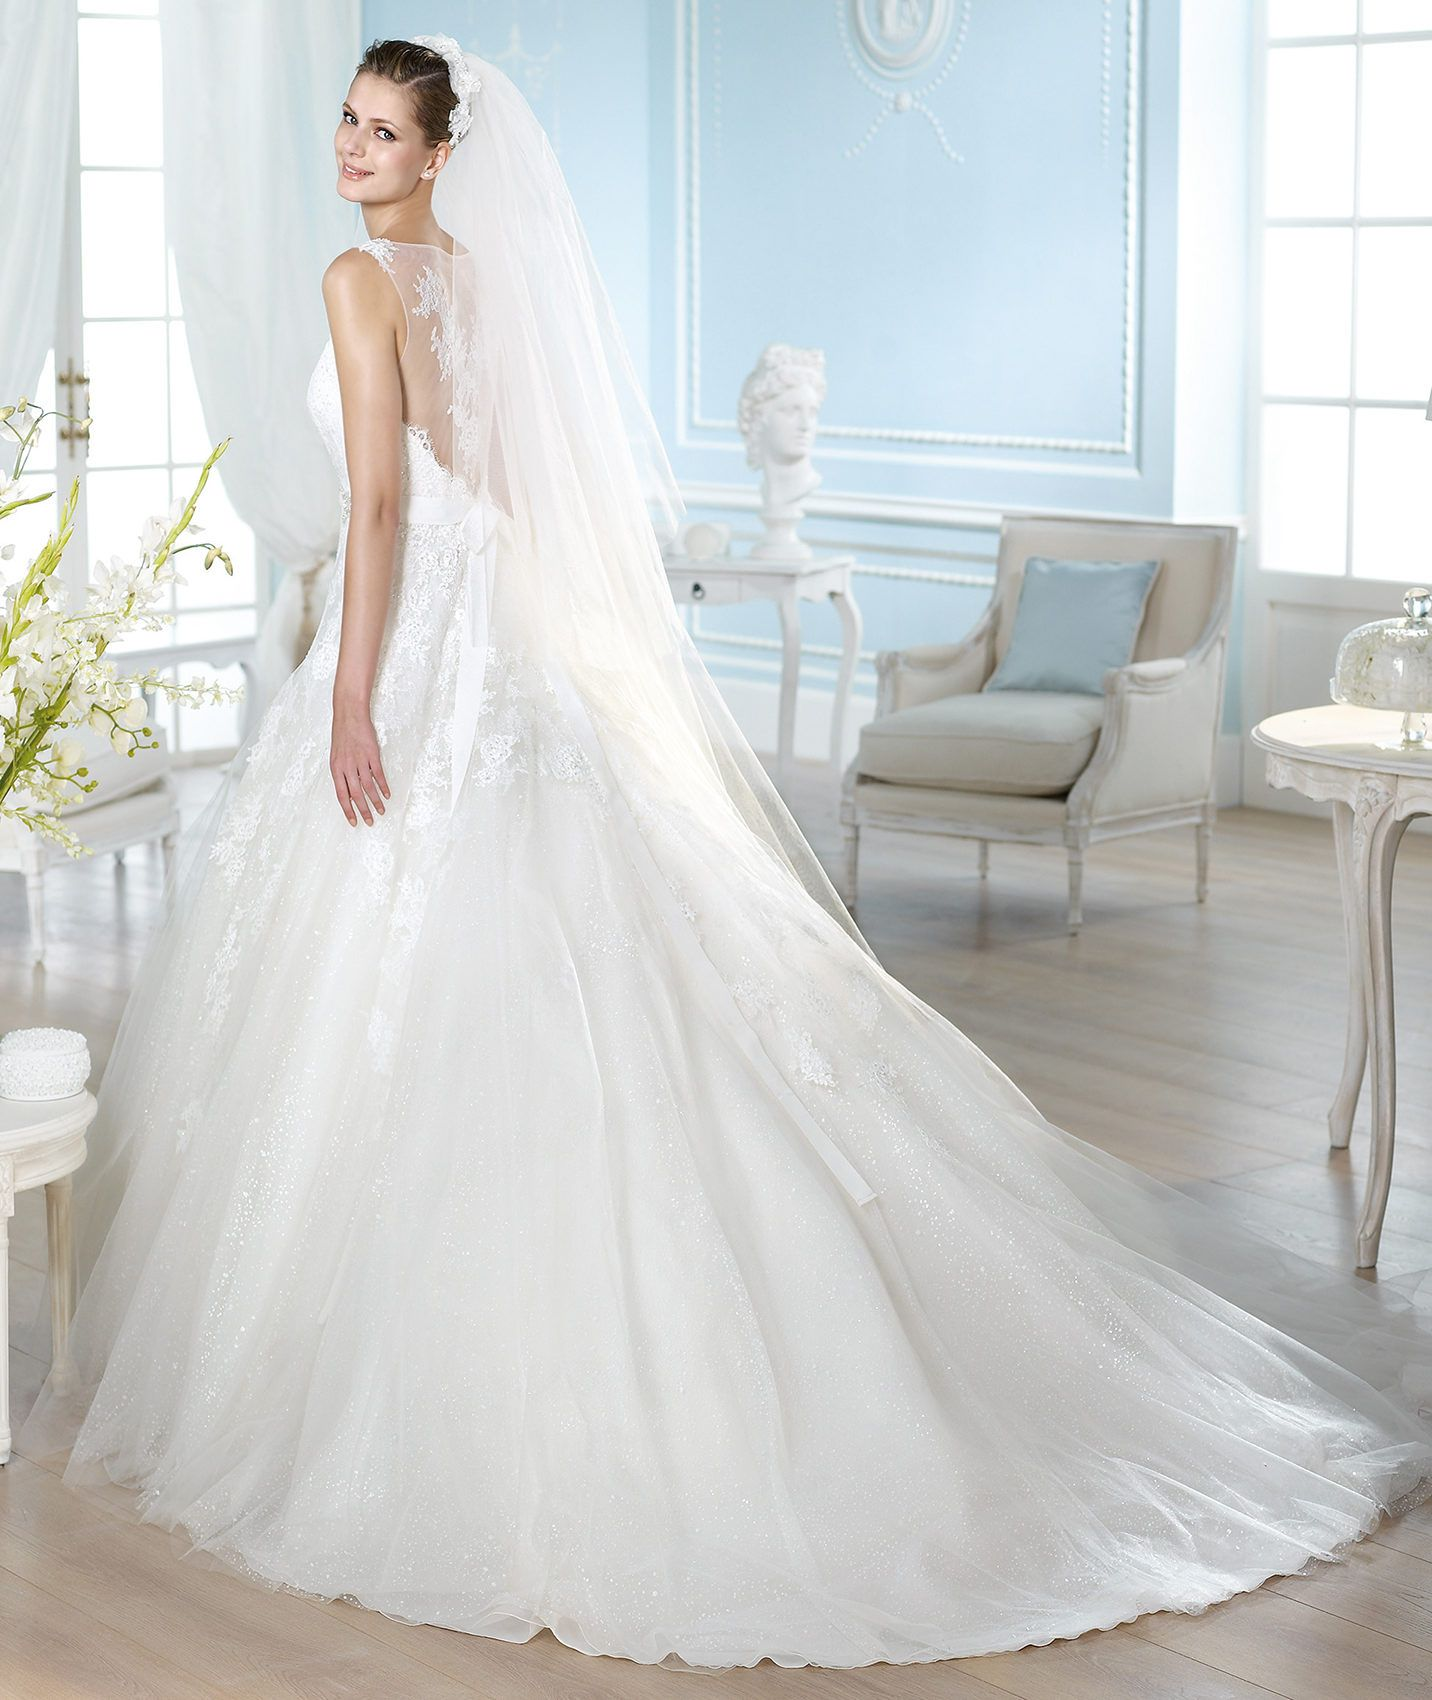 plus size wedding dresses find bridesmaid dresses  . Everything you need for weddings & events. https://www.lacekingdom.com/